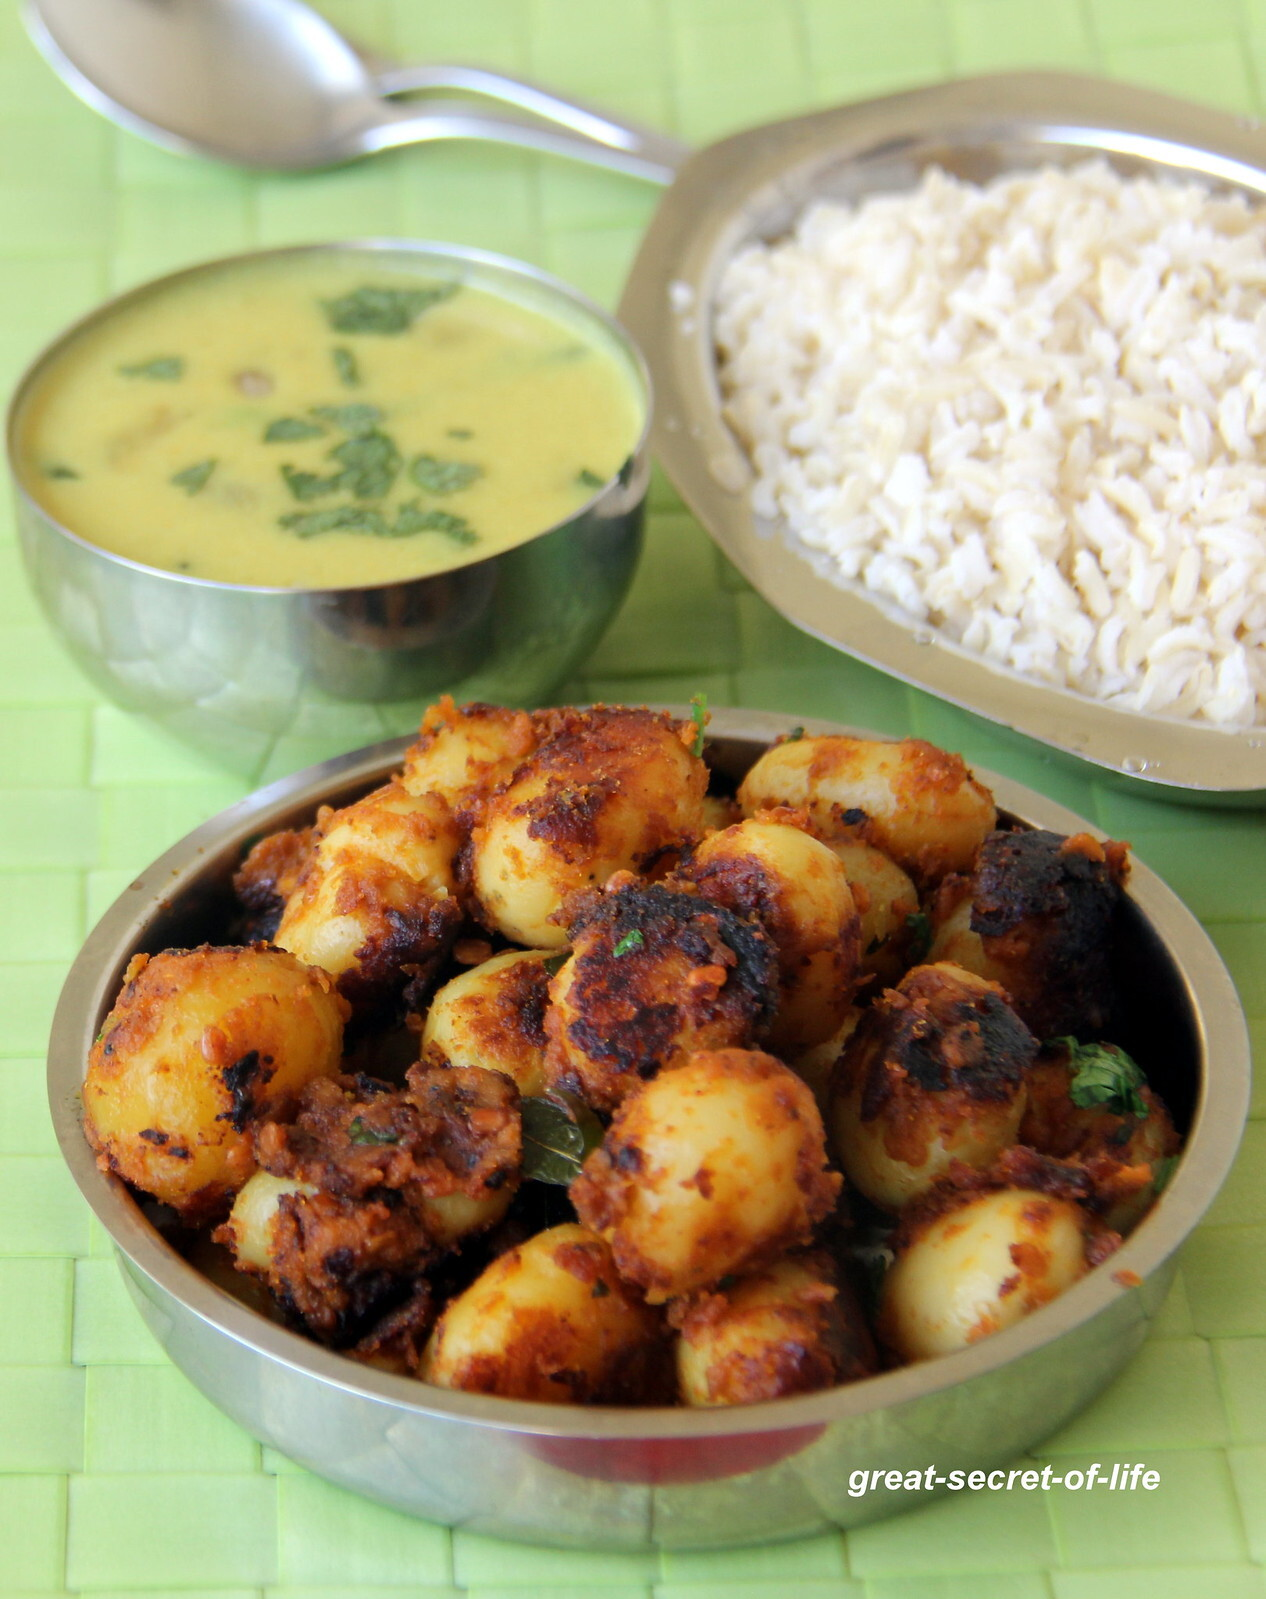 Baby Potatoes Fry - Small Potato fry - Simple Potato Recipe